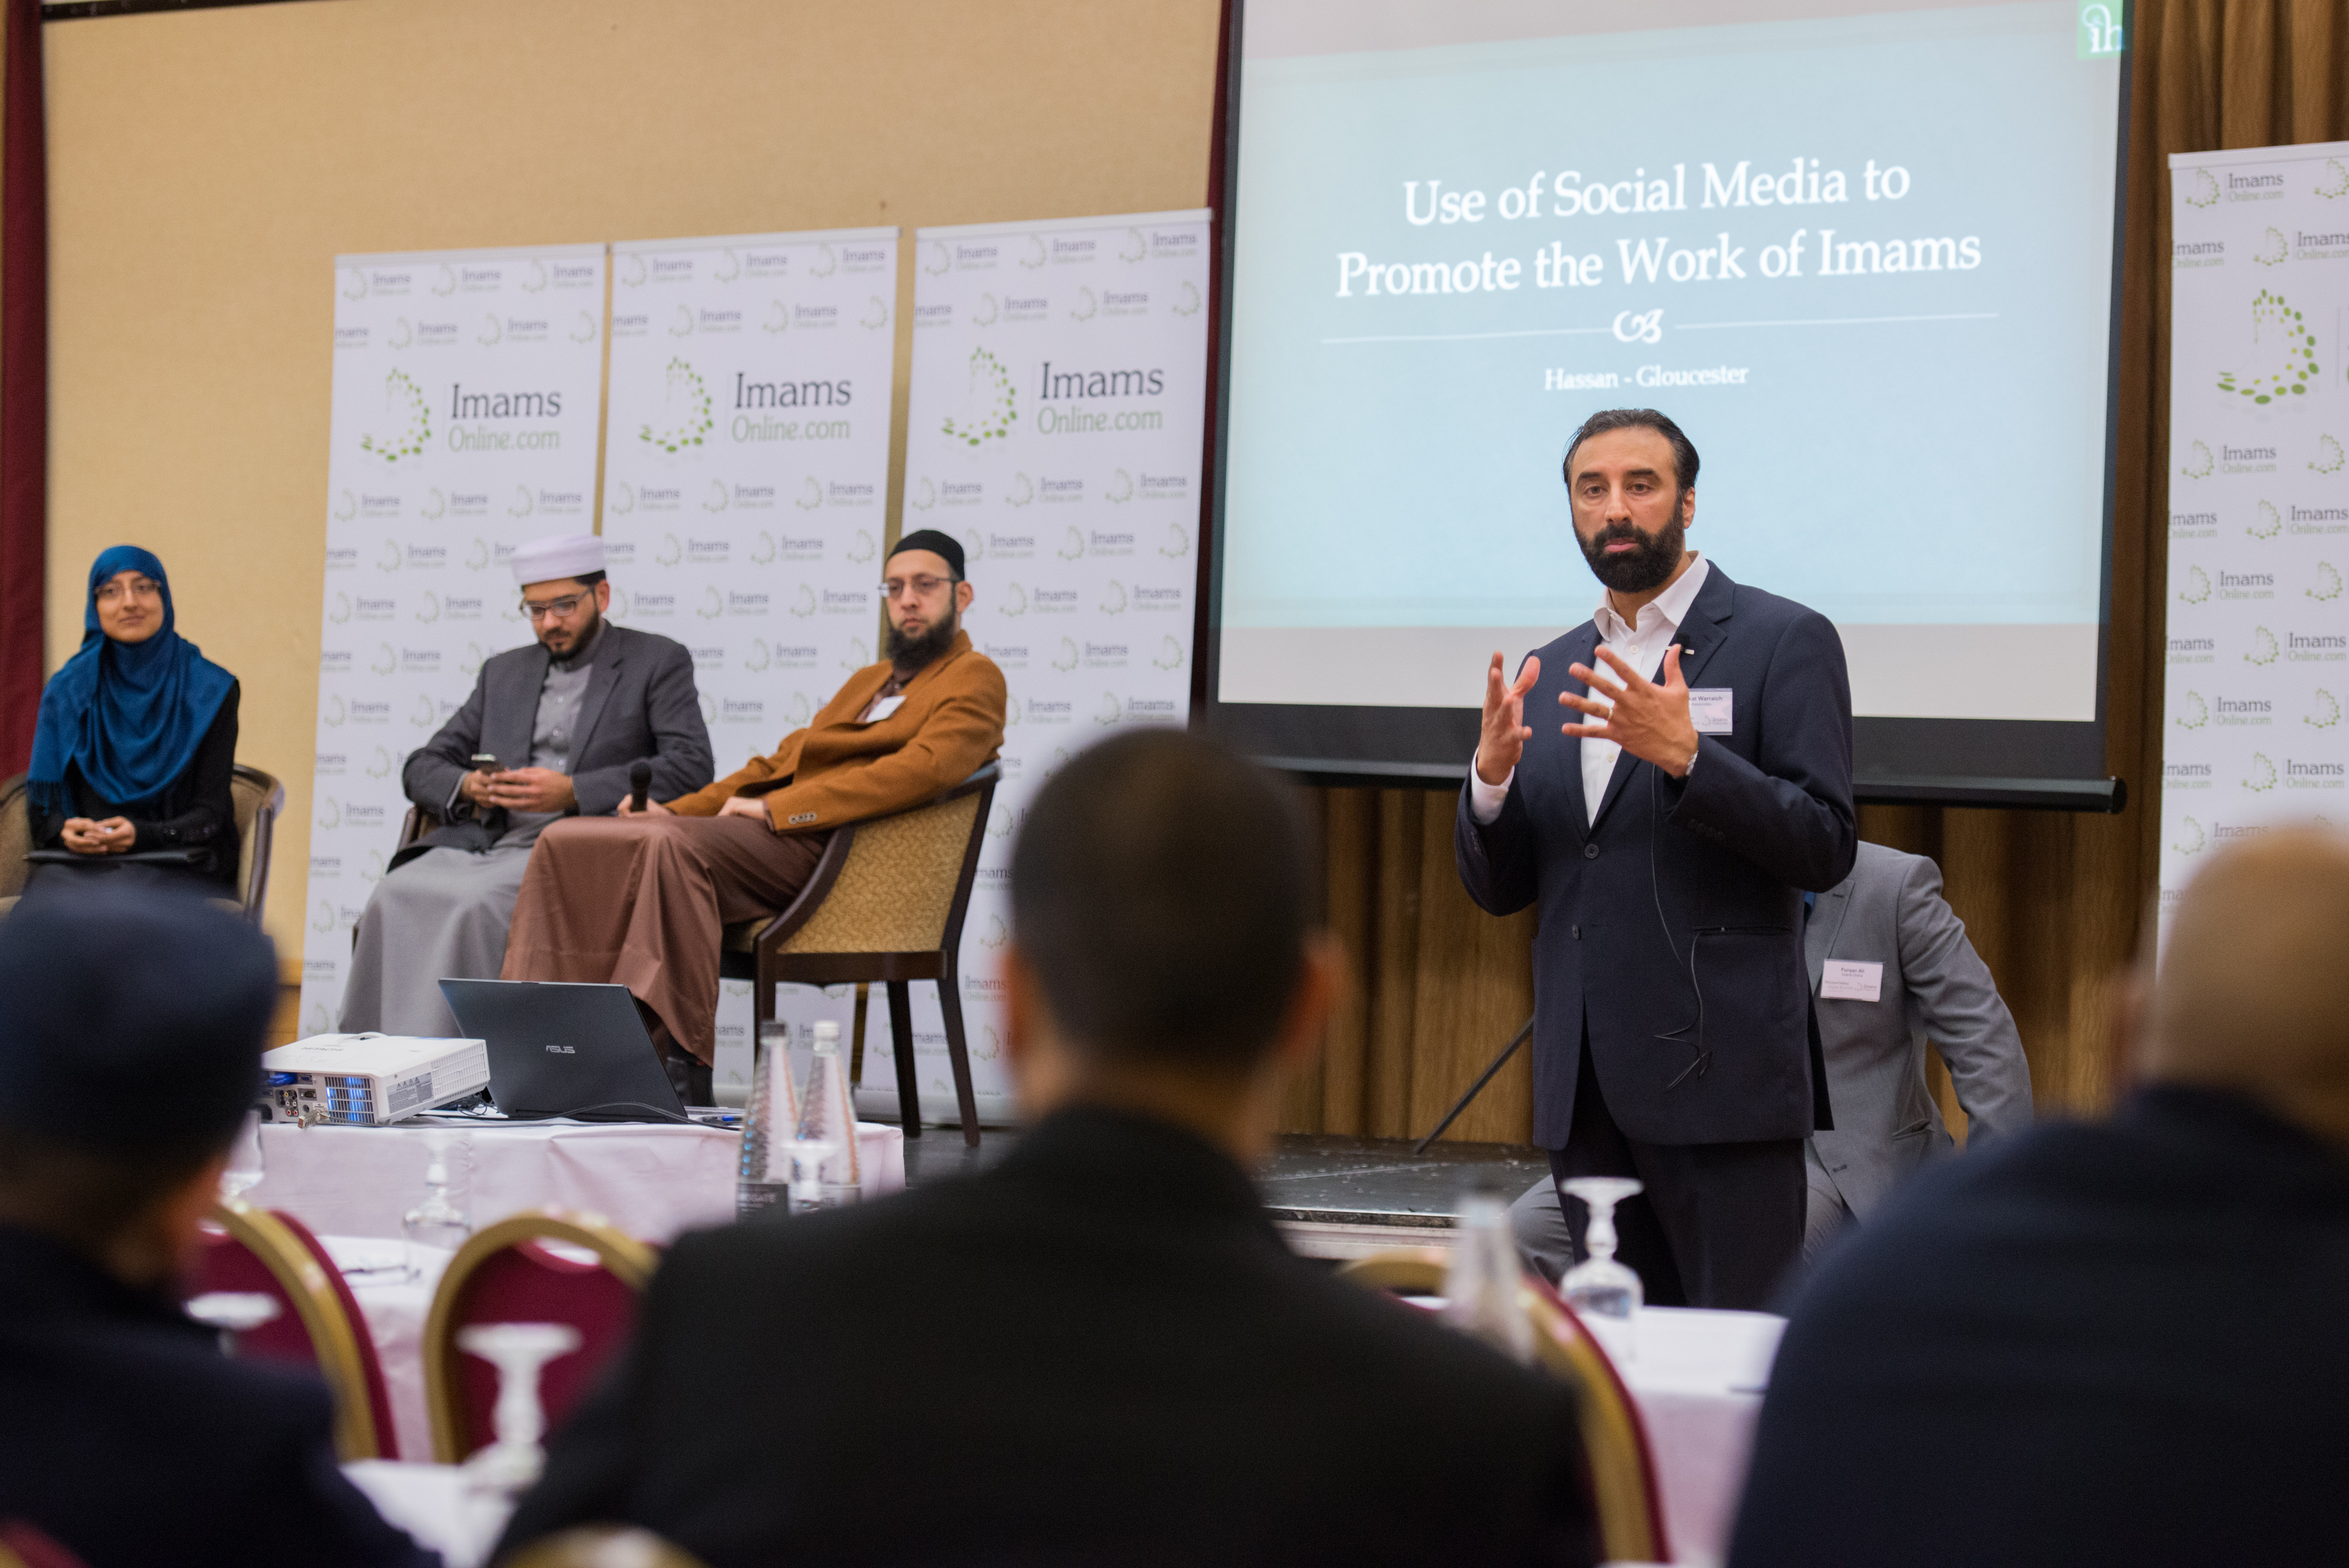 Shaukat Warriach introducing the Religious Panel Discussion at the Imams Online Digital Summit